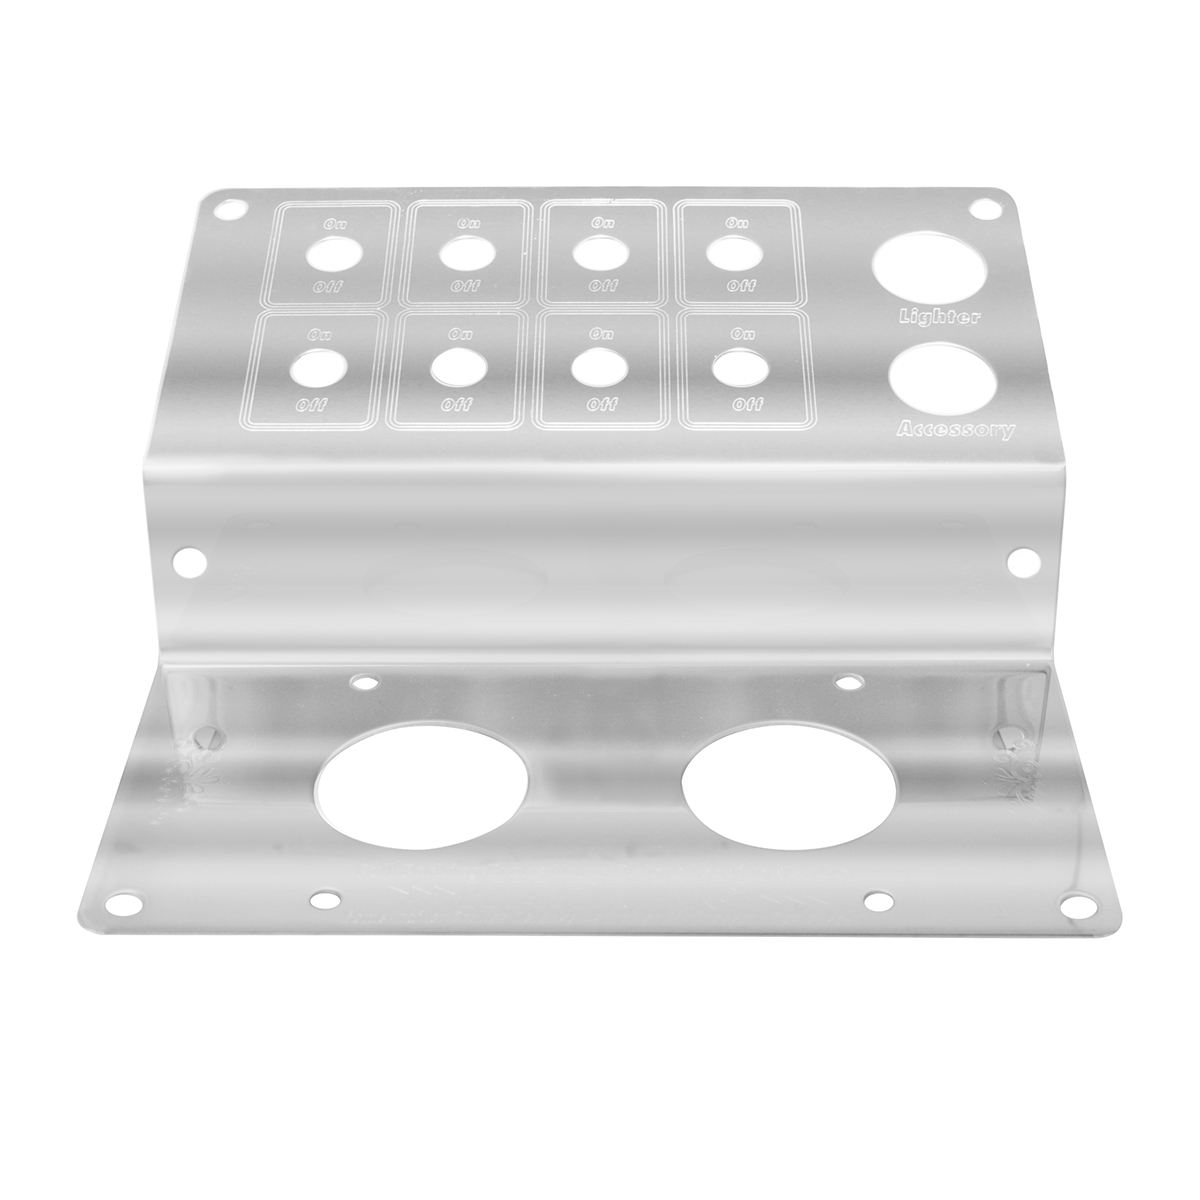 68329 Parking Brake Control Plate w/ 8 Switches for Peterbilt 379